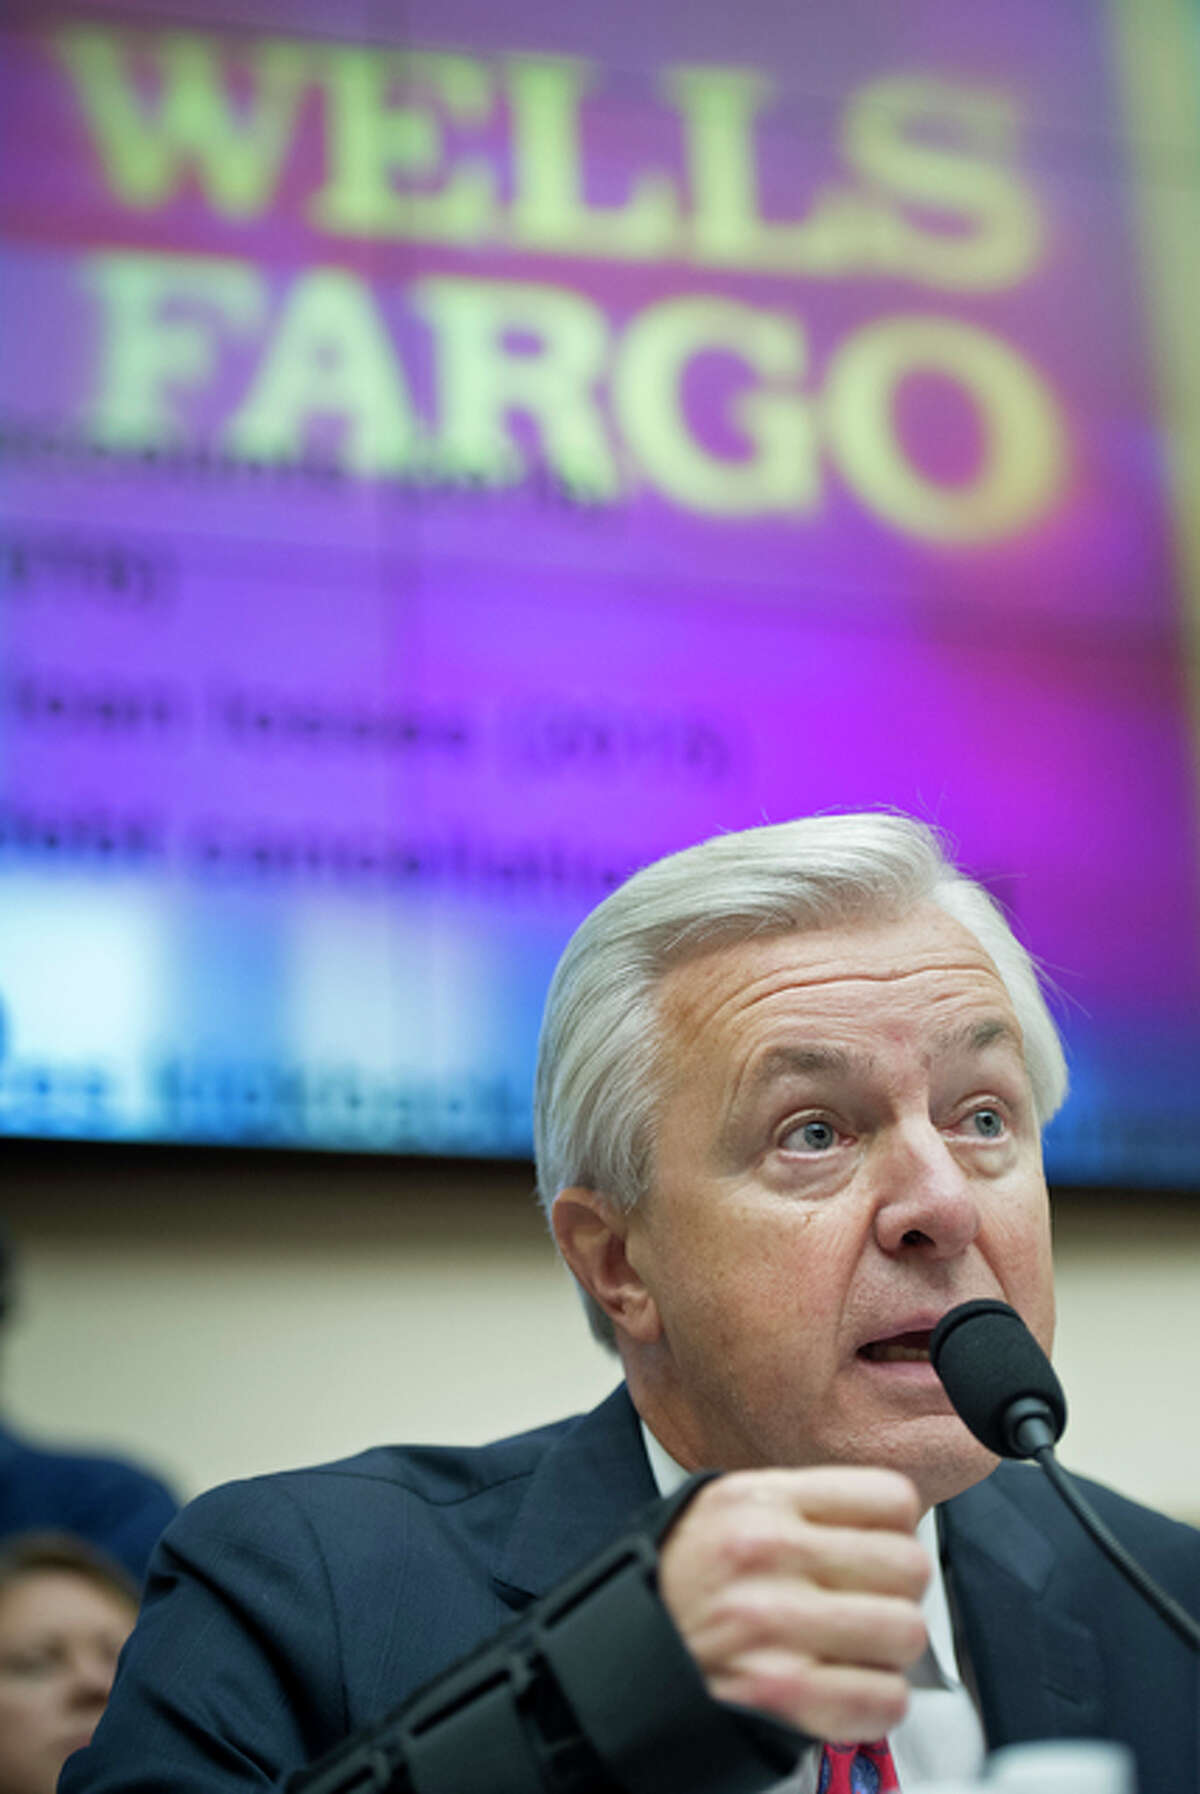 Wells Fargo CEO John Stumpf testifies on Capitol Hill in Washington, Thursday, Sept. 29, before the House Financial Services Committee investigating Wells Fargo's opening of unauthorized customer accounts.